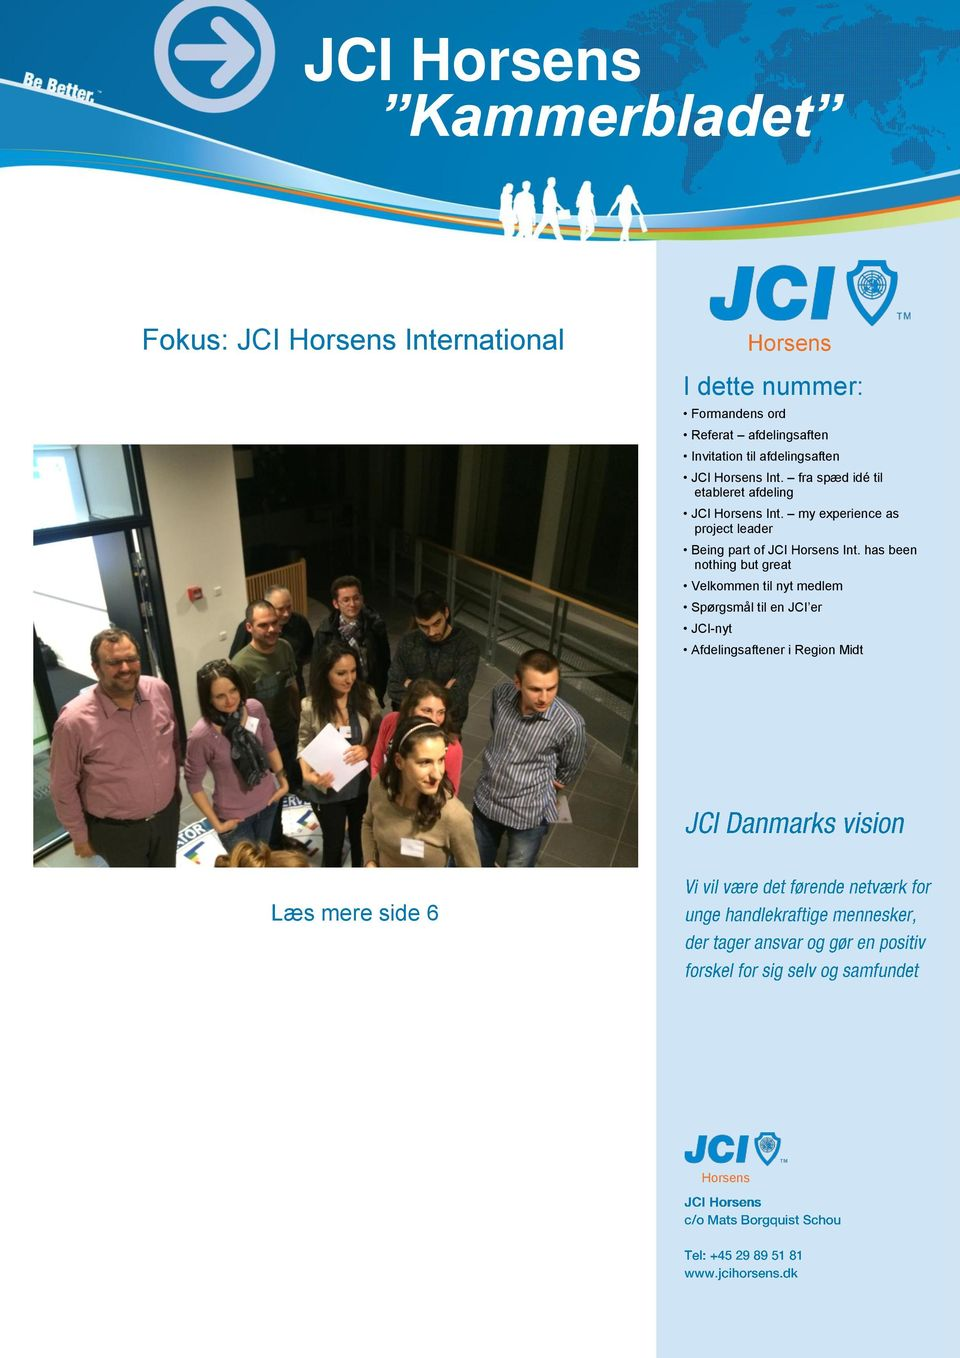 my experience as project leader Being part of JCI Int.